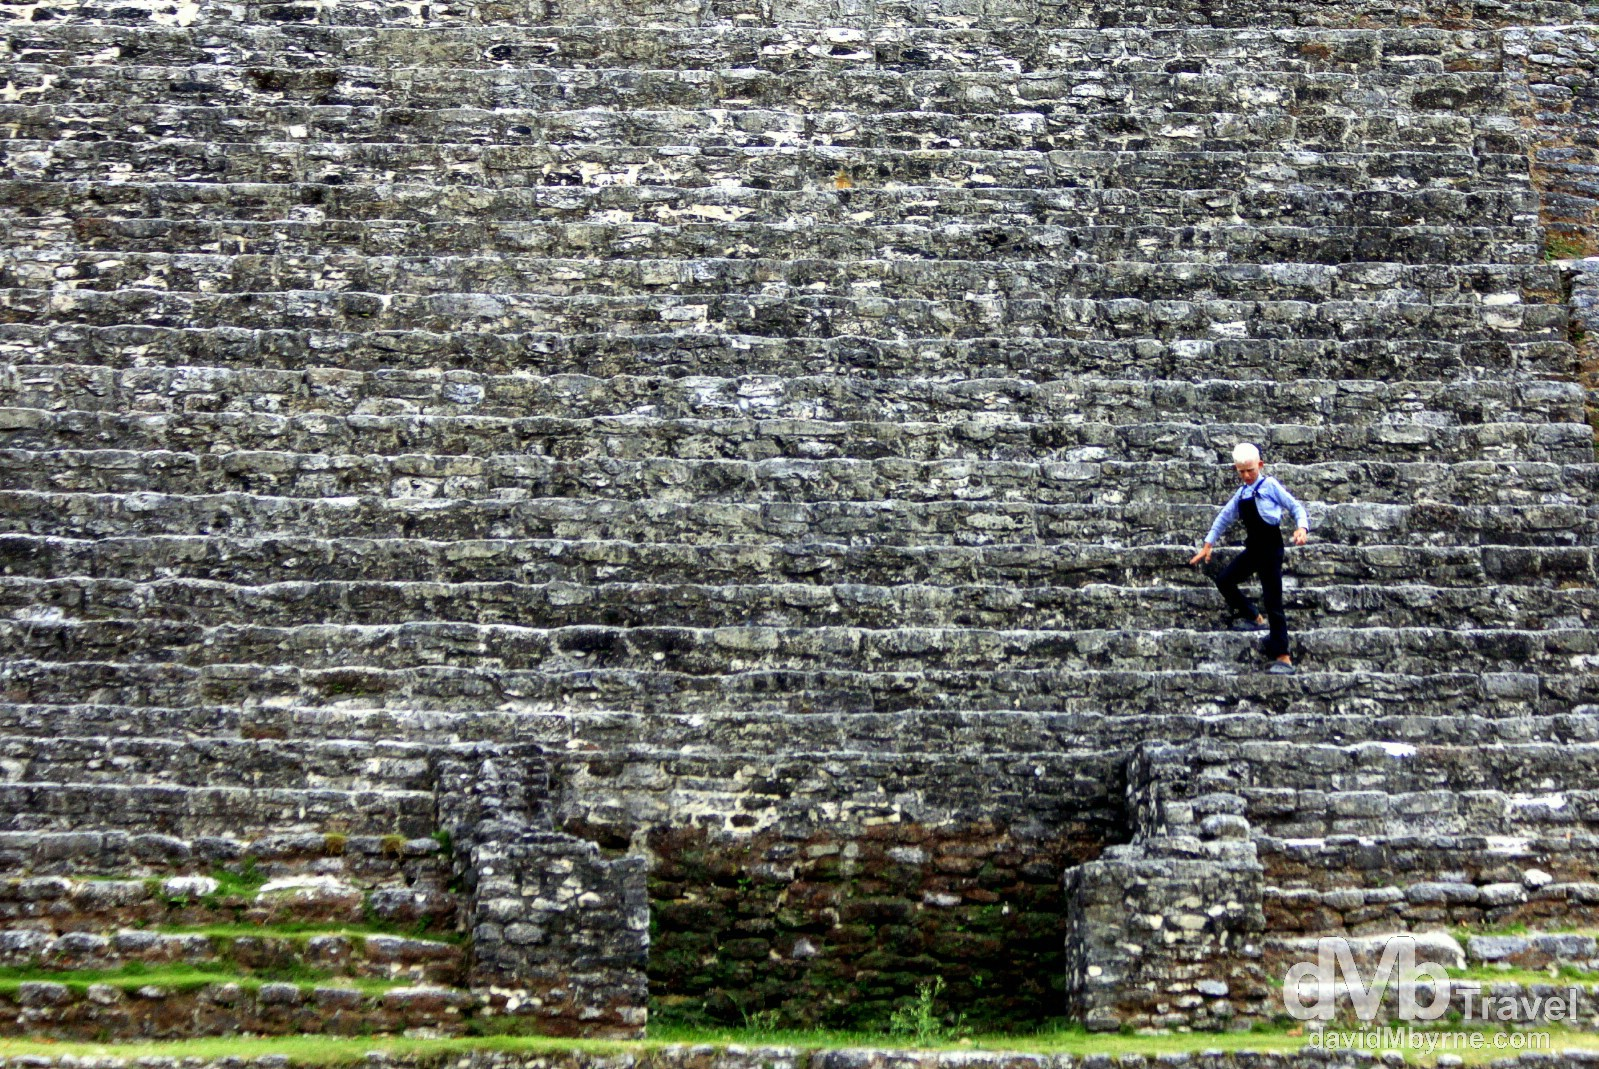 A Mennonite boy descends the steps of the Jaguar Temple at the Lamanai Mayan ruins in Central Belize. May 11th 2013.